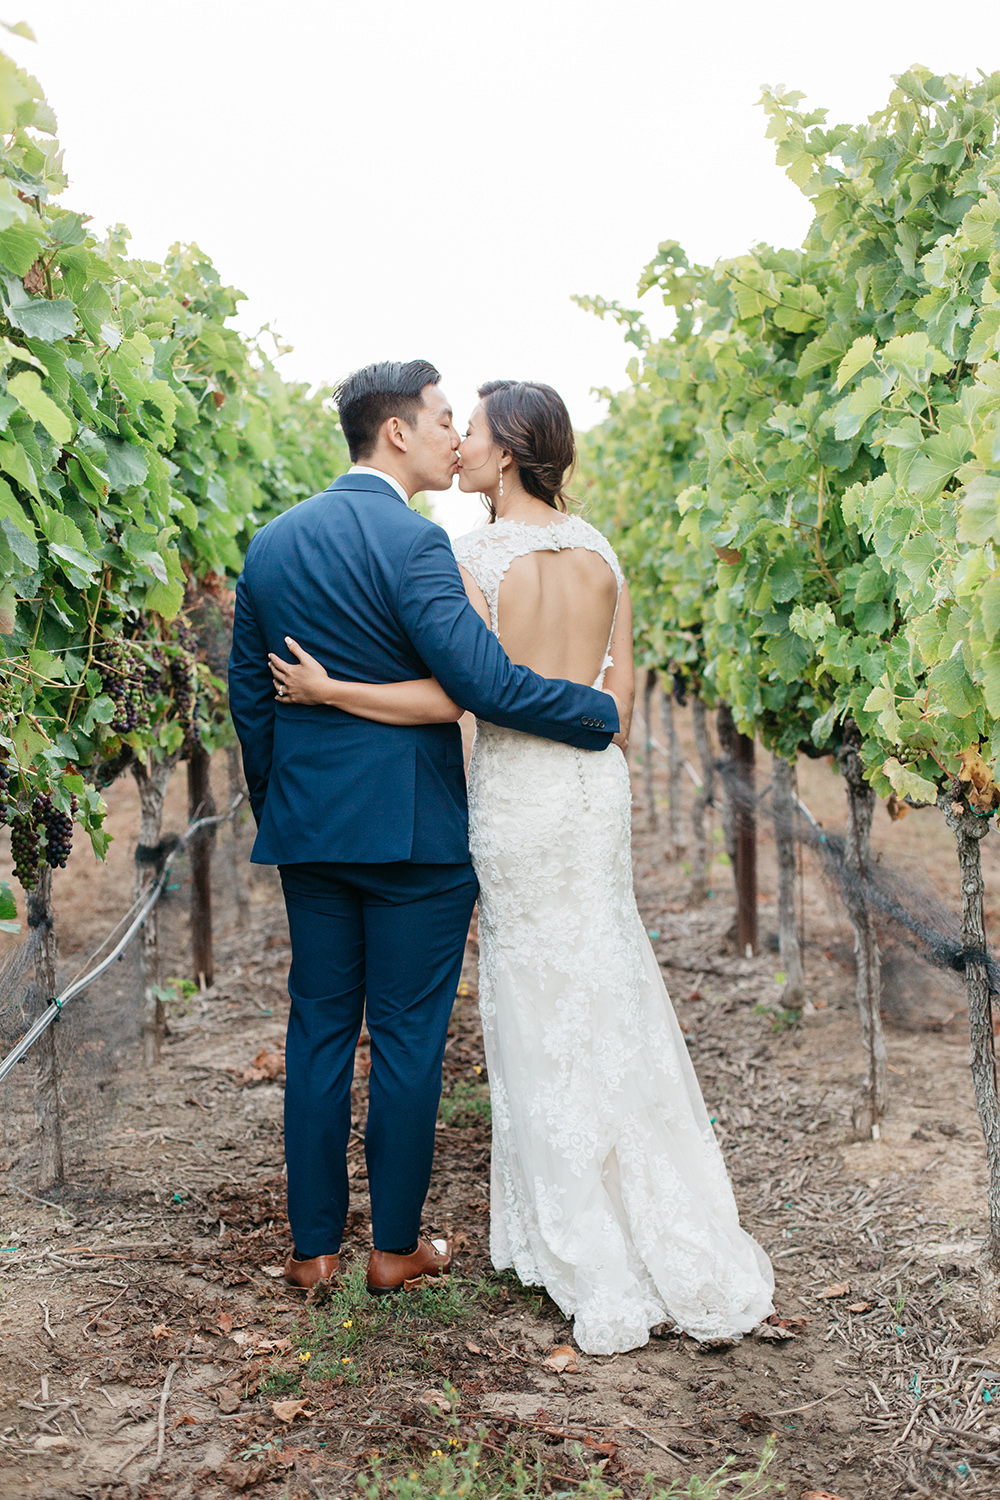 sunset portraits of bride and groom in vineyard wedding at eagle vines golf club in napa california